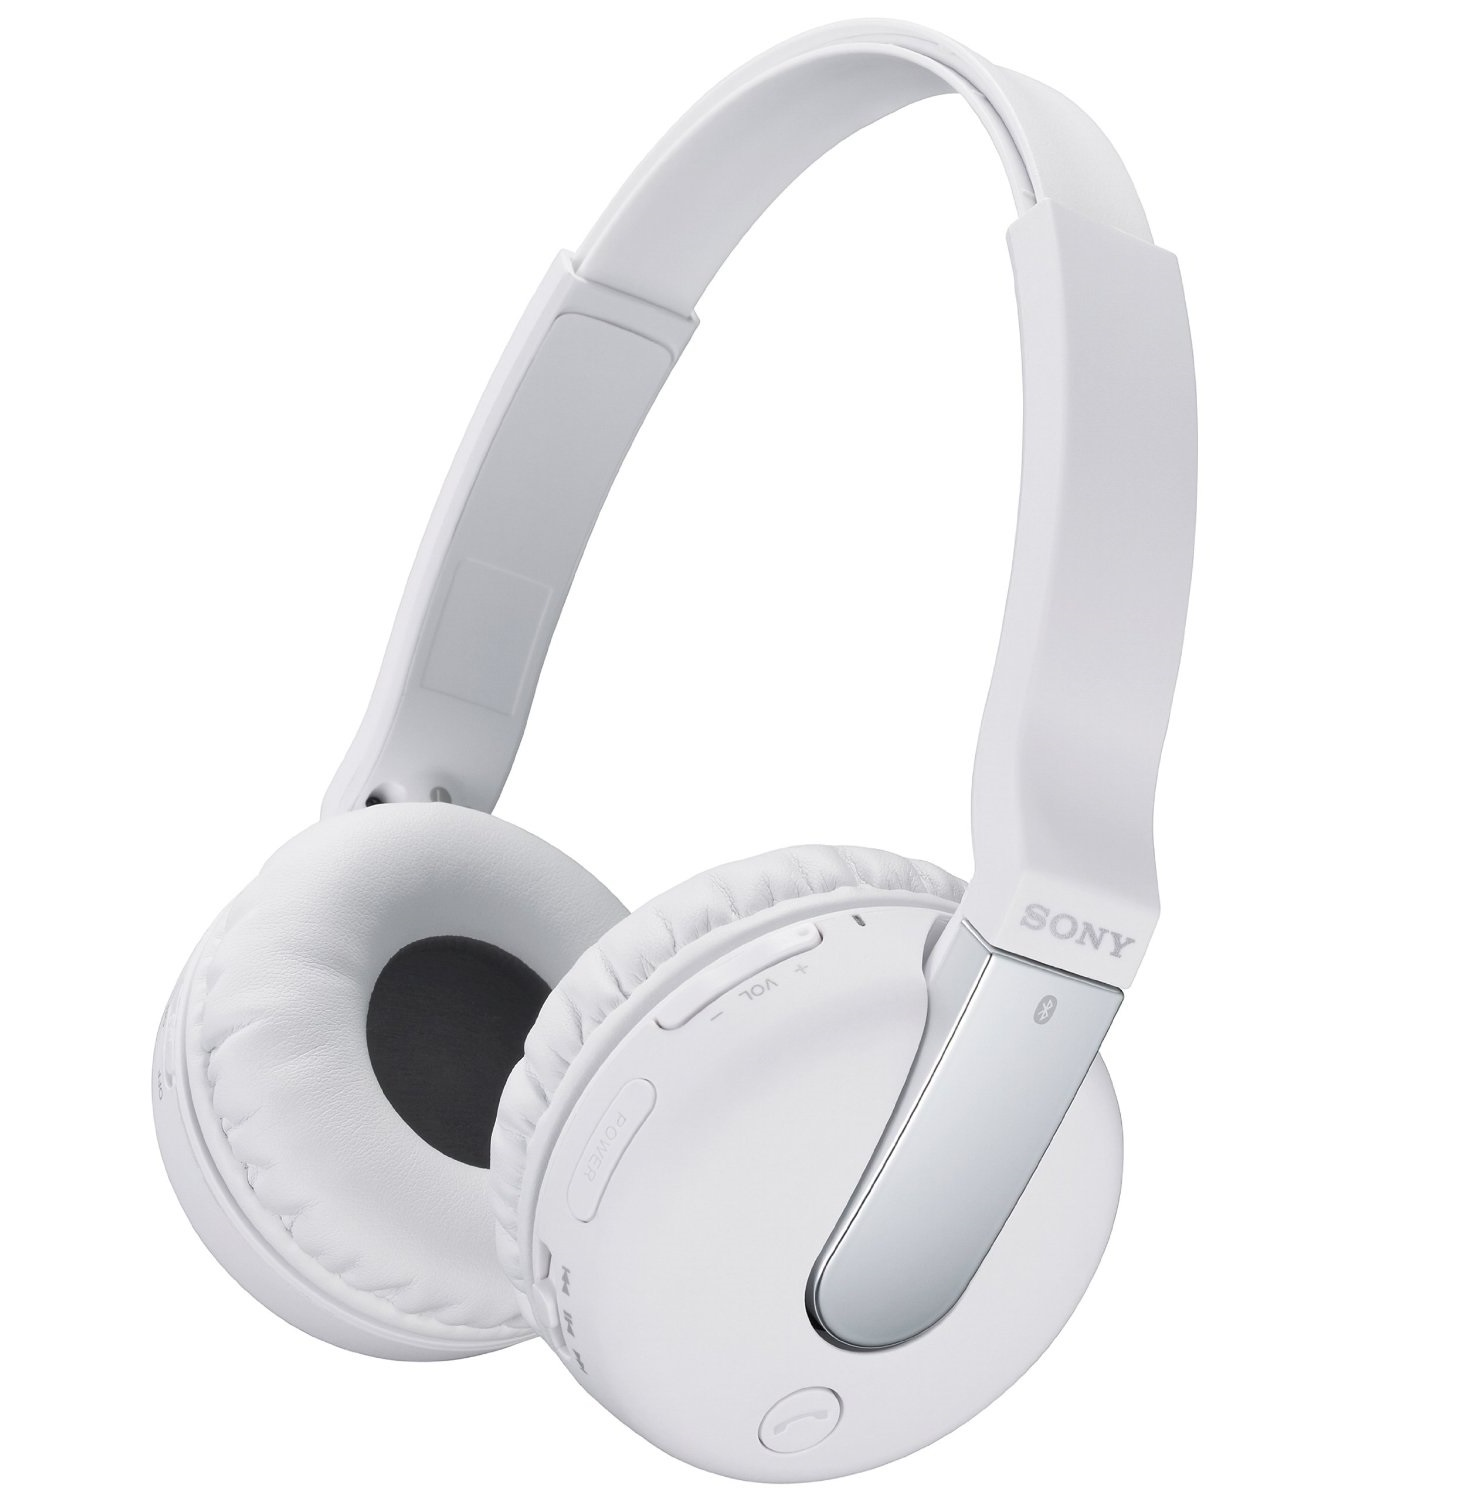 BARGAIN Sony DR-BTN200M Bluetooth Wireless Headset JUST £28.11 At Amazon